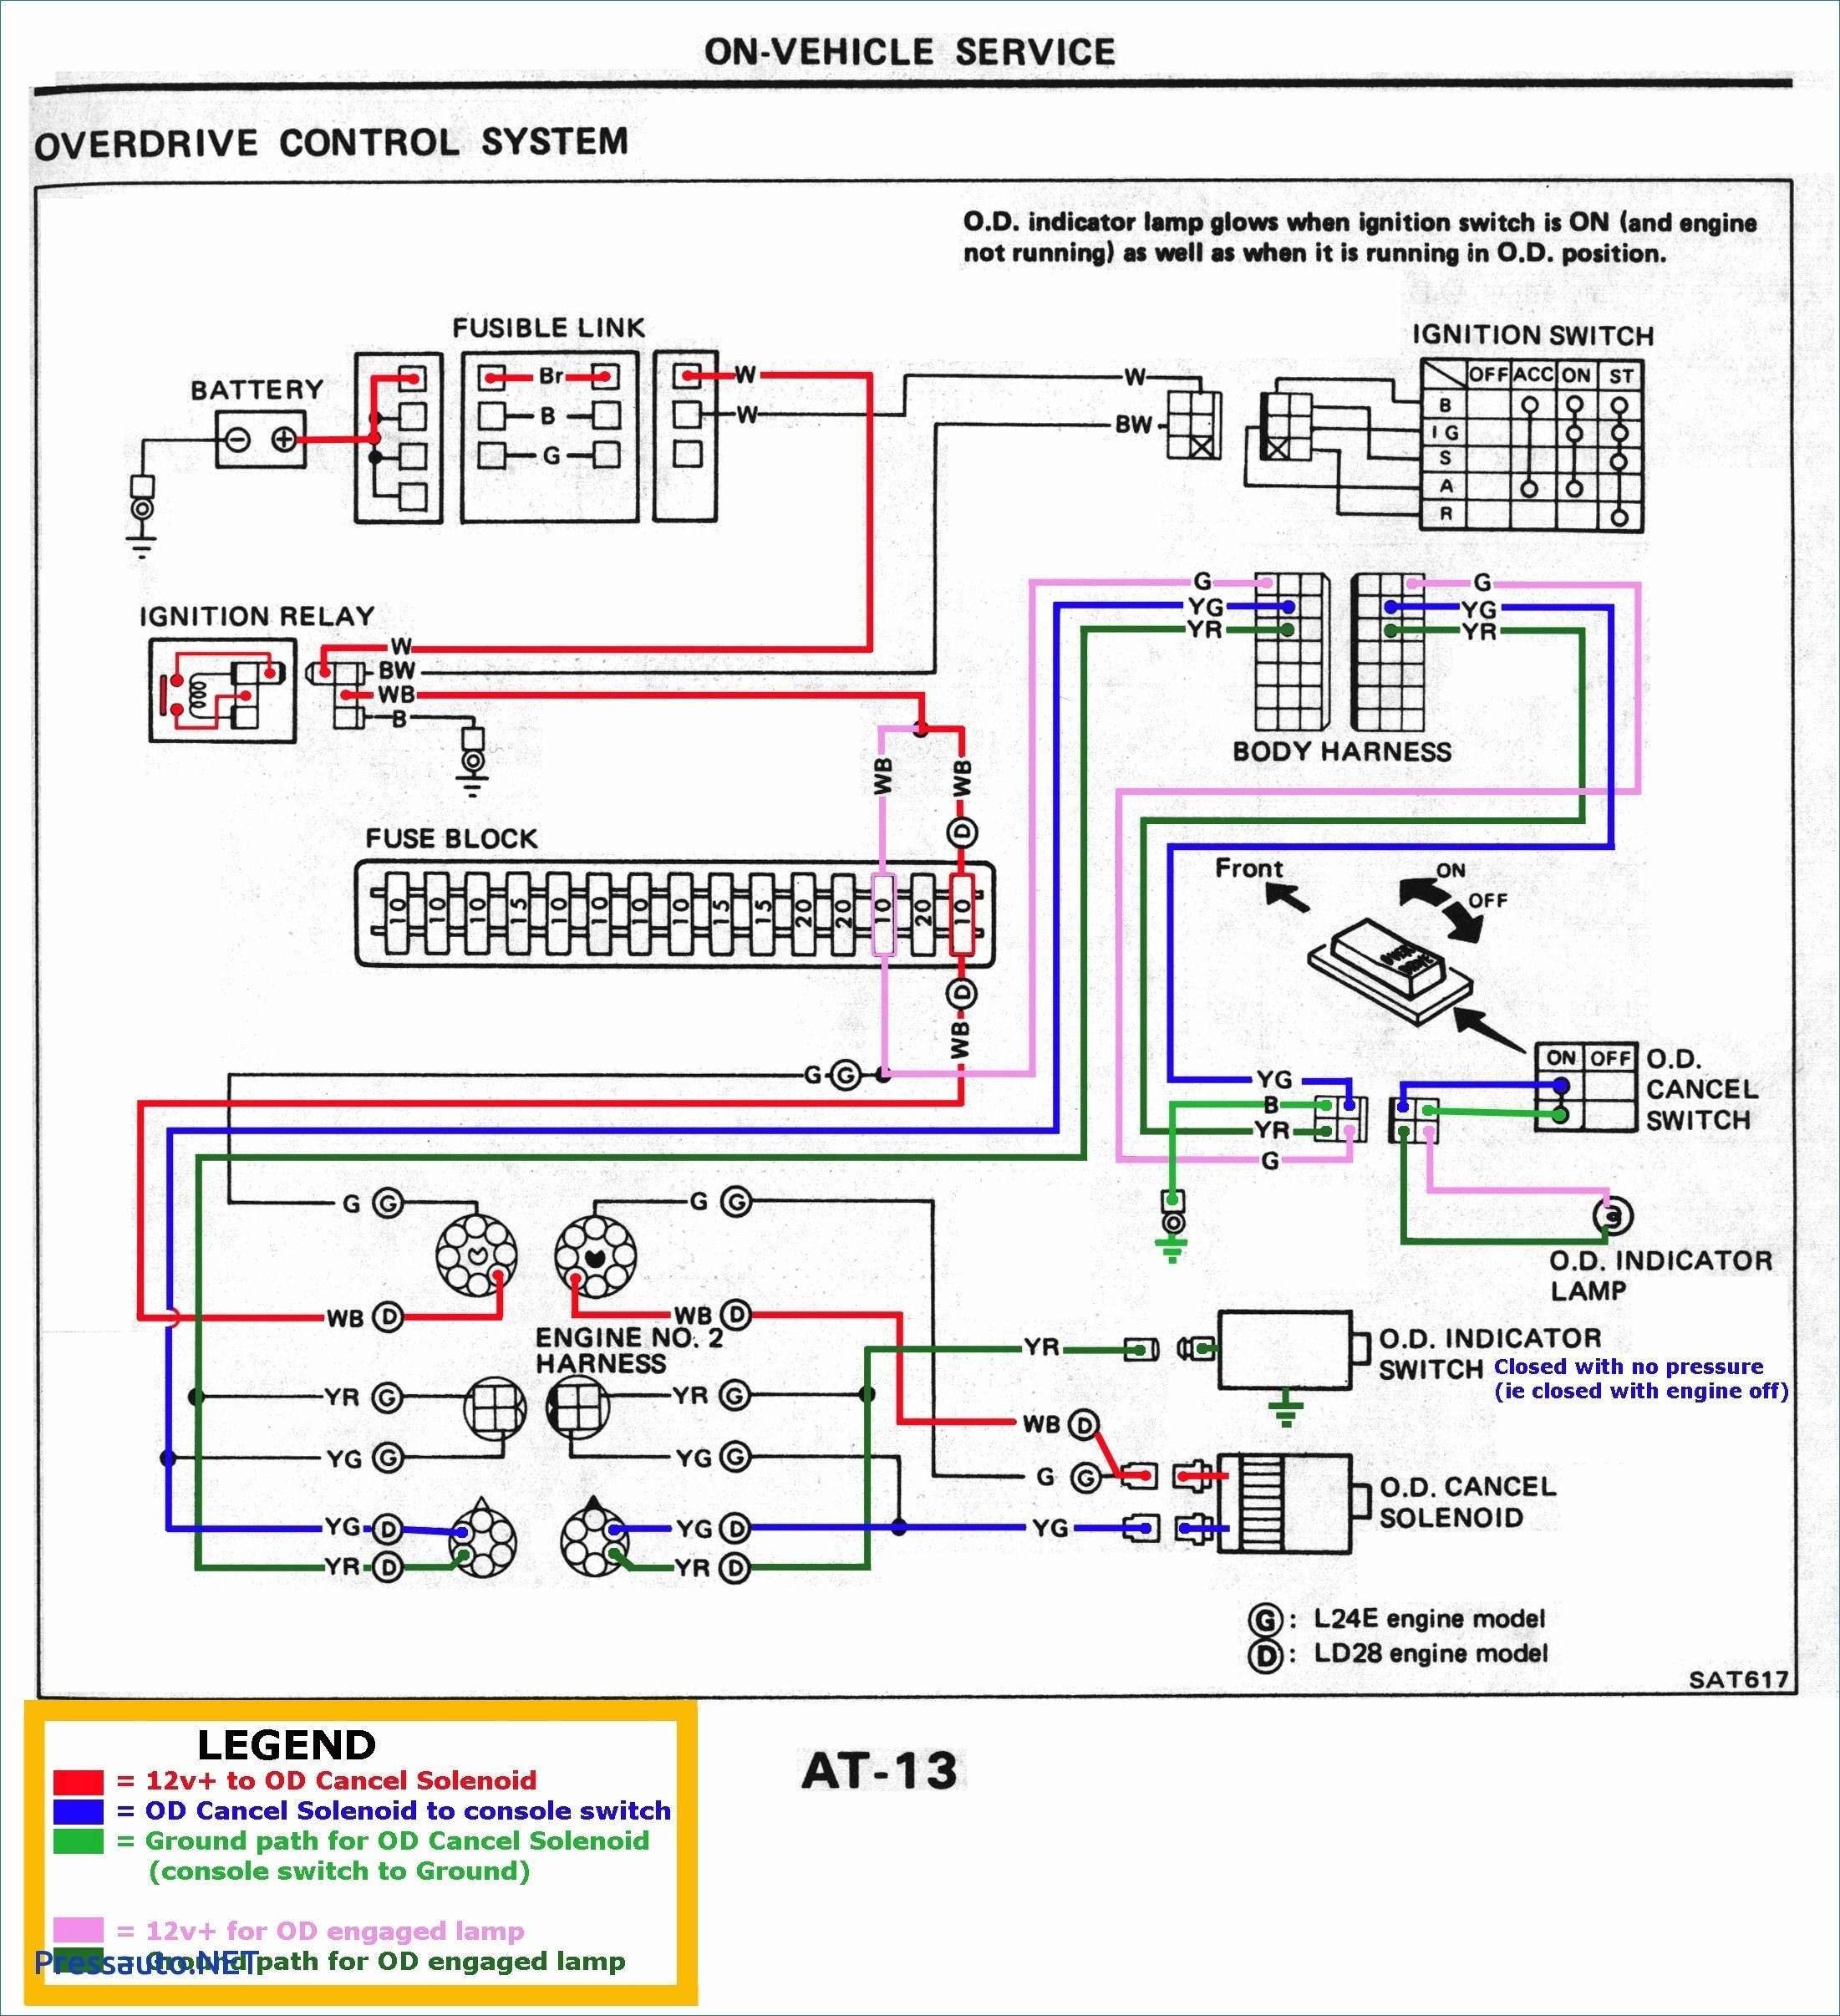 John Deere Ignition Switch Wiring - Wiring Diagram & Cable ... on